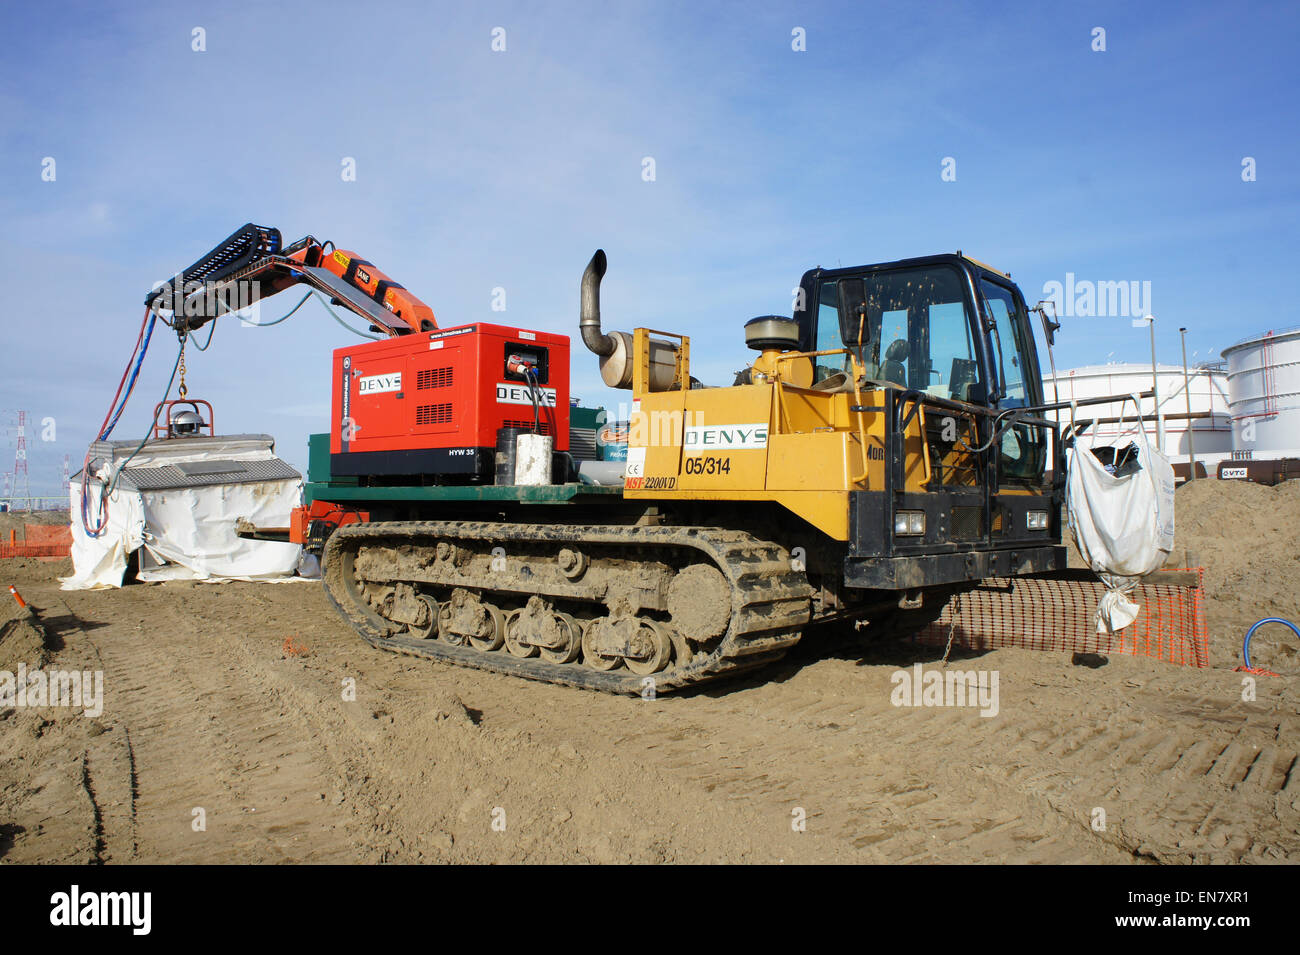 Morooka Rubber Track Carrier MST 2200VD, DENYS 05-314 pic2 - Stock Image